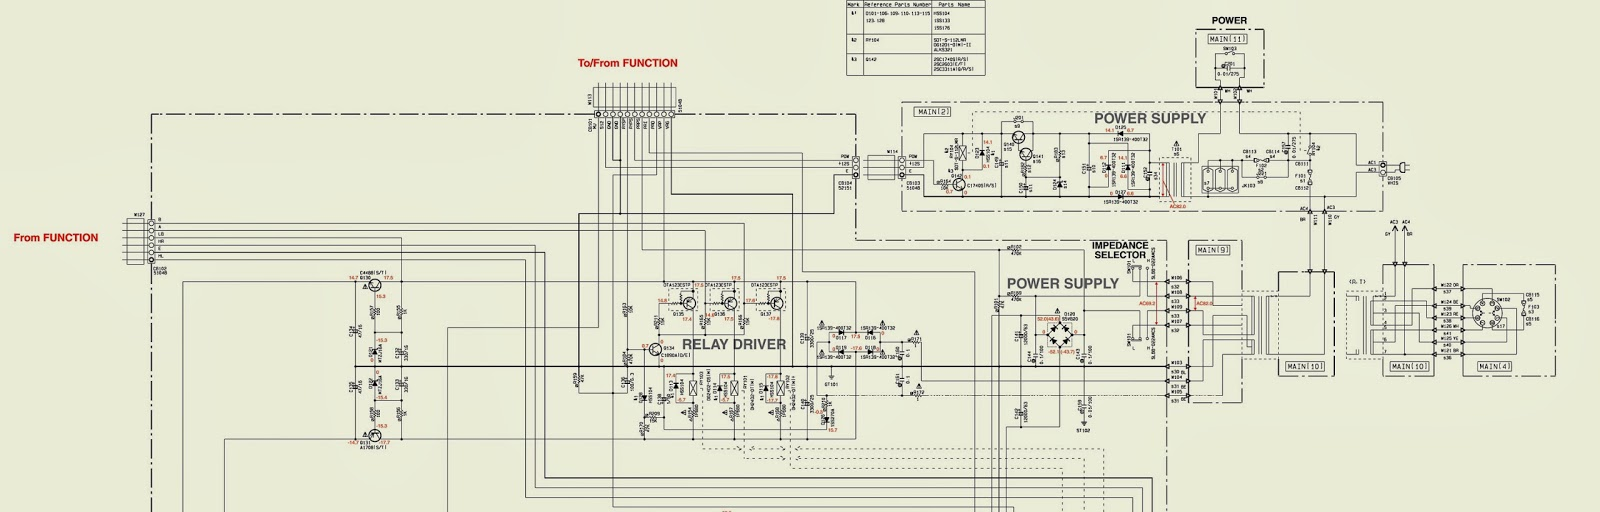 YAMAHA AX596  POWER & AMP  SCHEMATIC [Circuit Diagram]  STEREO AMPLIFIER | Electro help